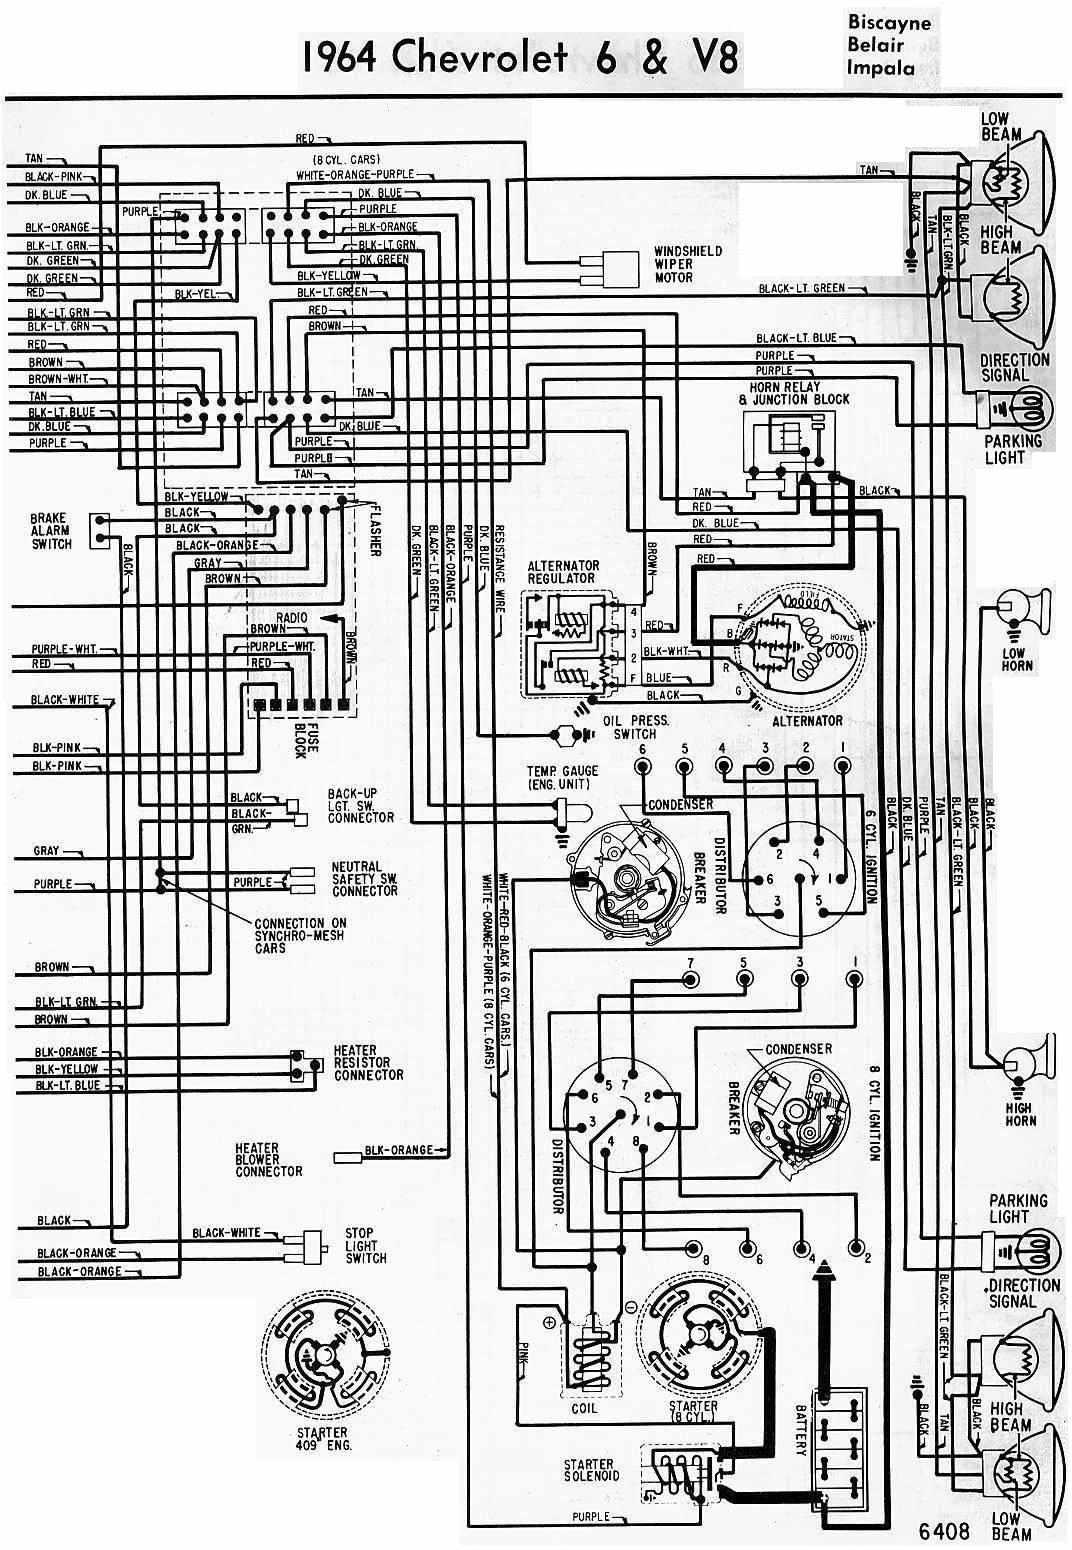 Electrical+Wiring+Diagram+Of+1964+Chevrolet+6+And+V8 1964 impala wiring diagram 1964 impala wiring diagram rear breaks 2000 GMC Truck Electrical Wiring Diagrams at crackthecode.co